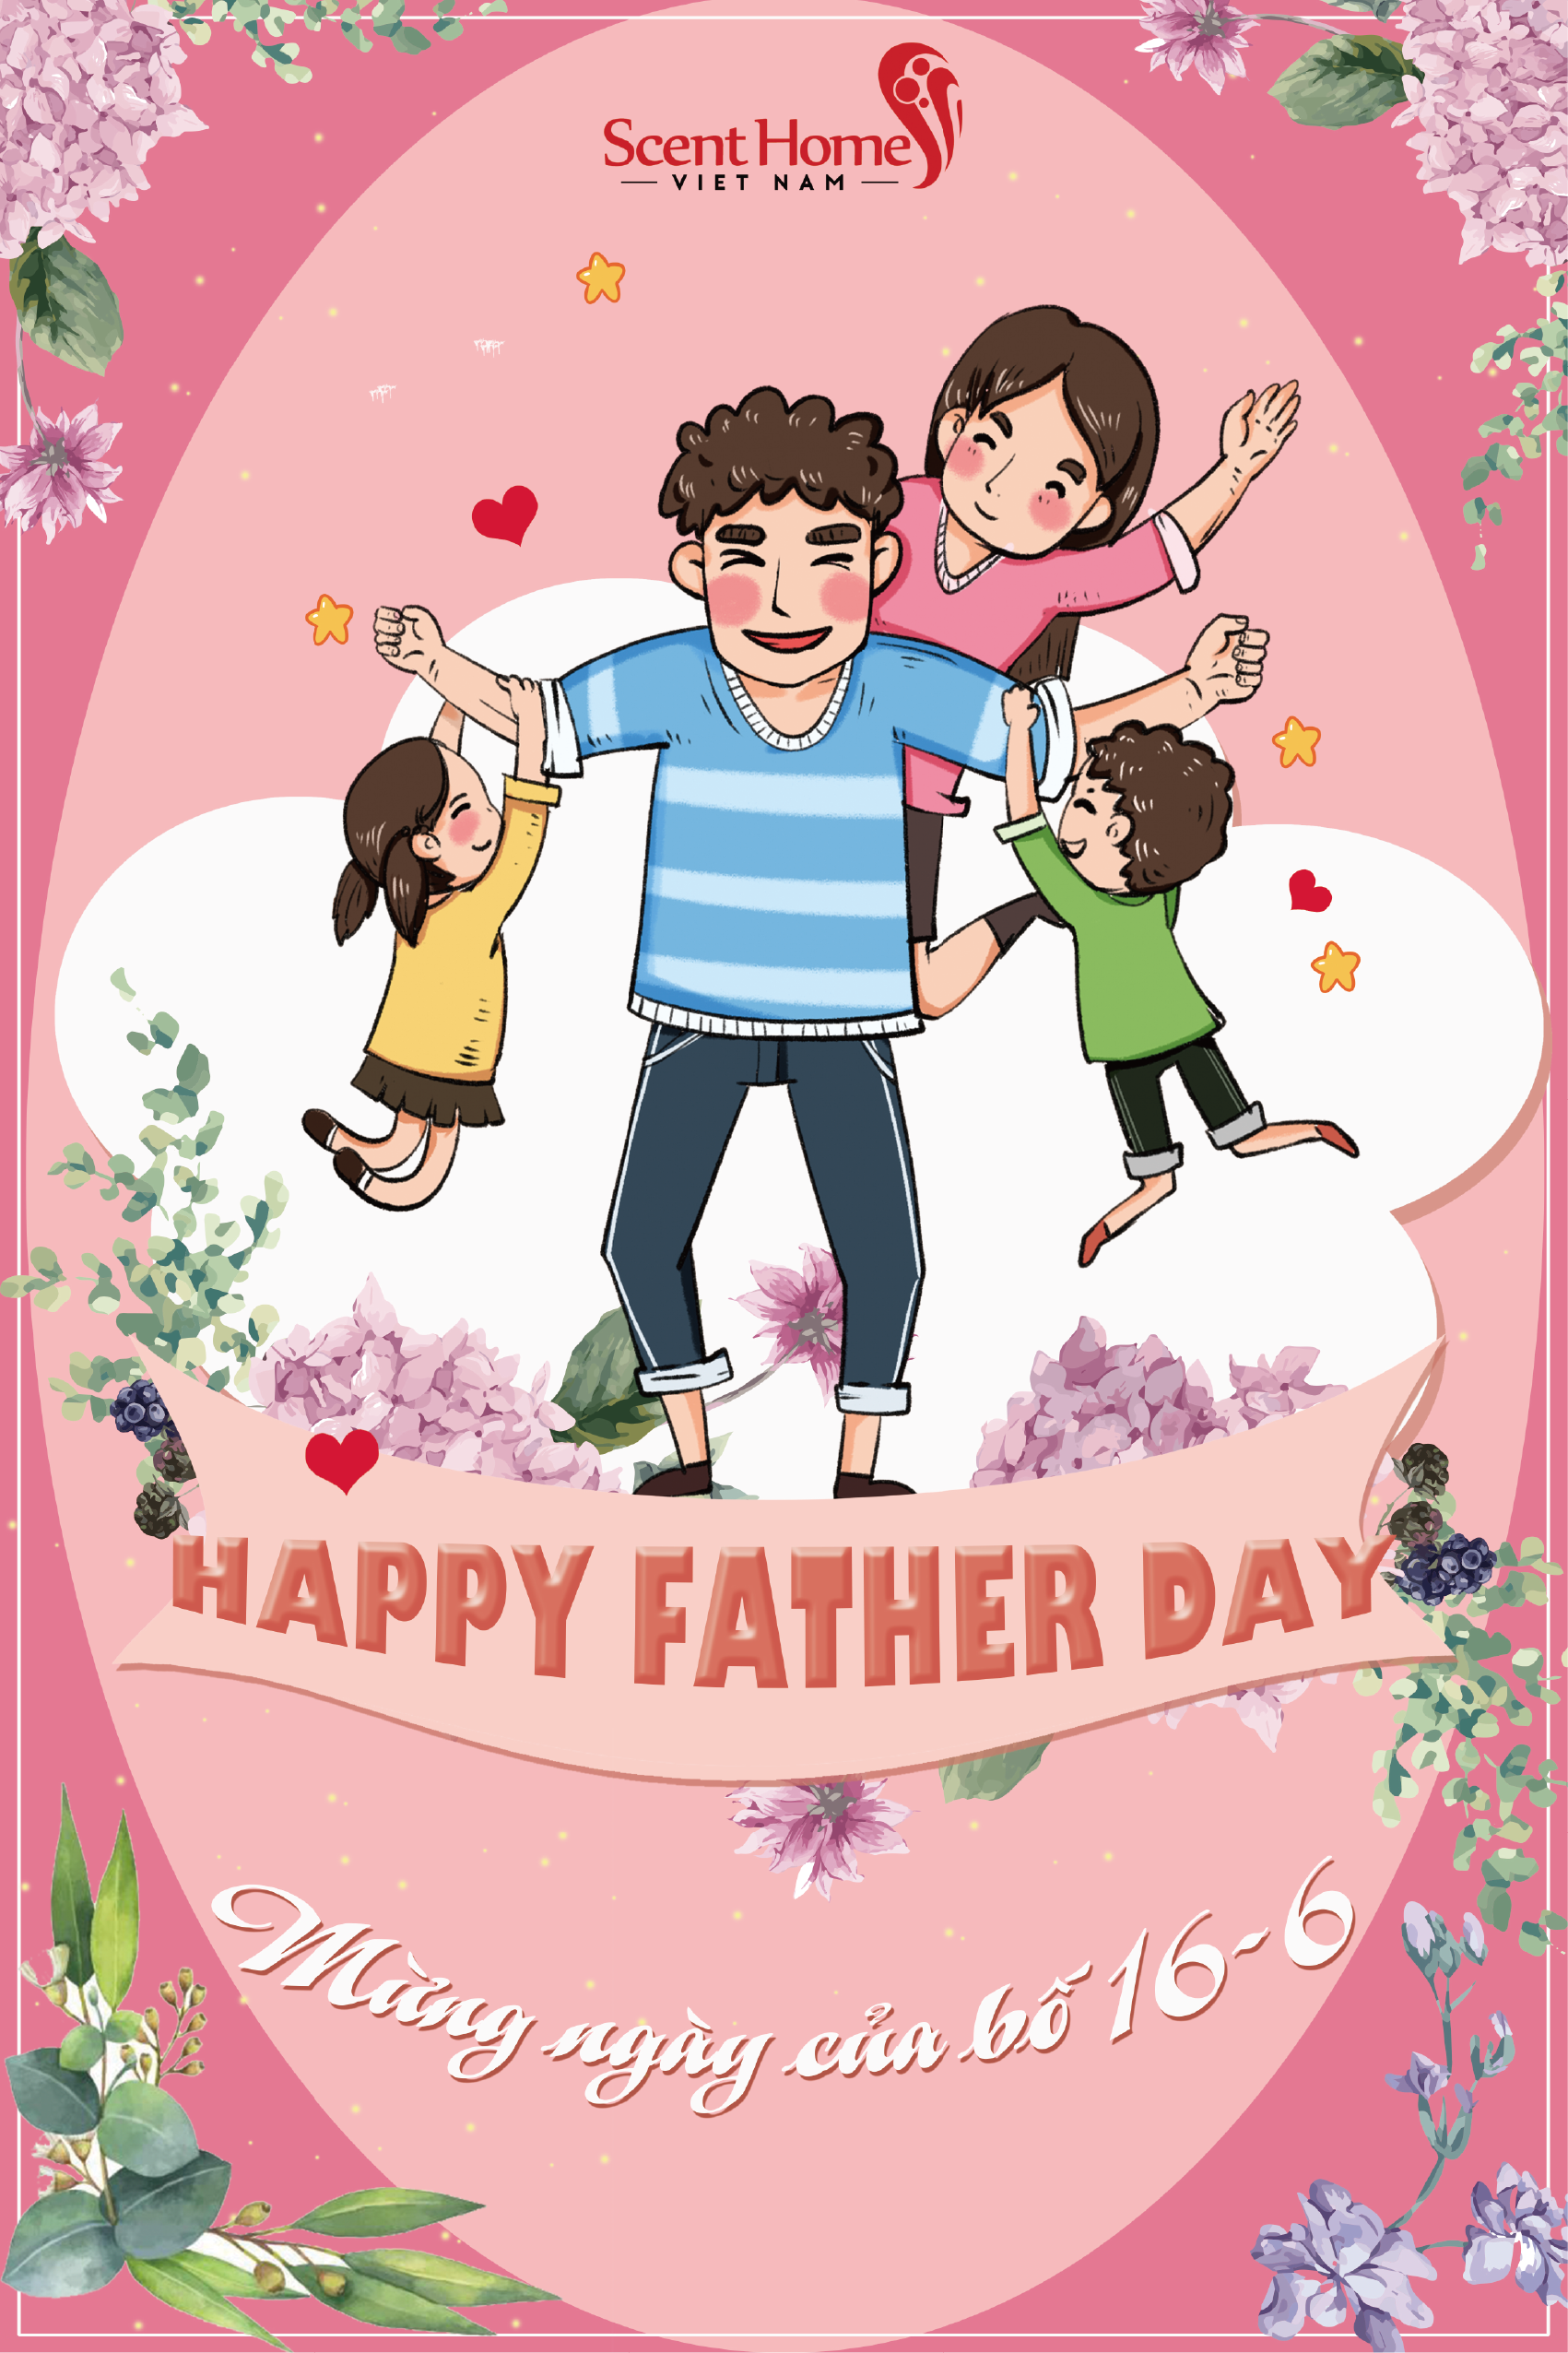 Happy Father's Day – Chúc mừng ngày của cha!